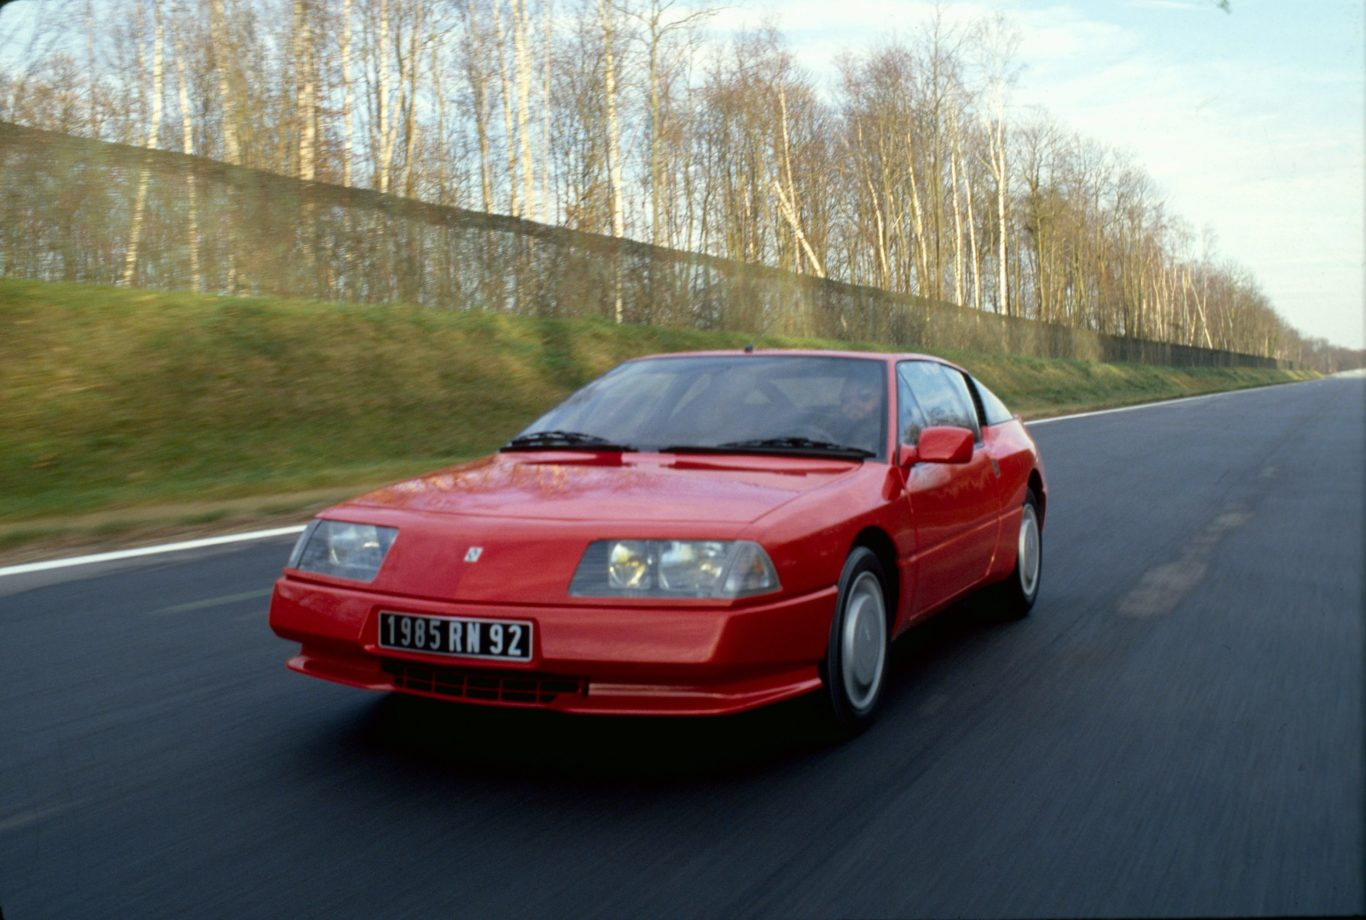 The Alpine GTA was a facelifted and modernised version of the old Alpine A310